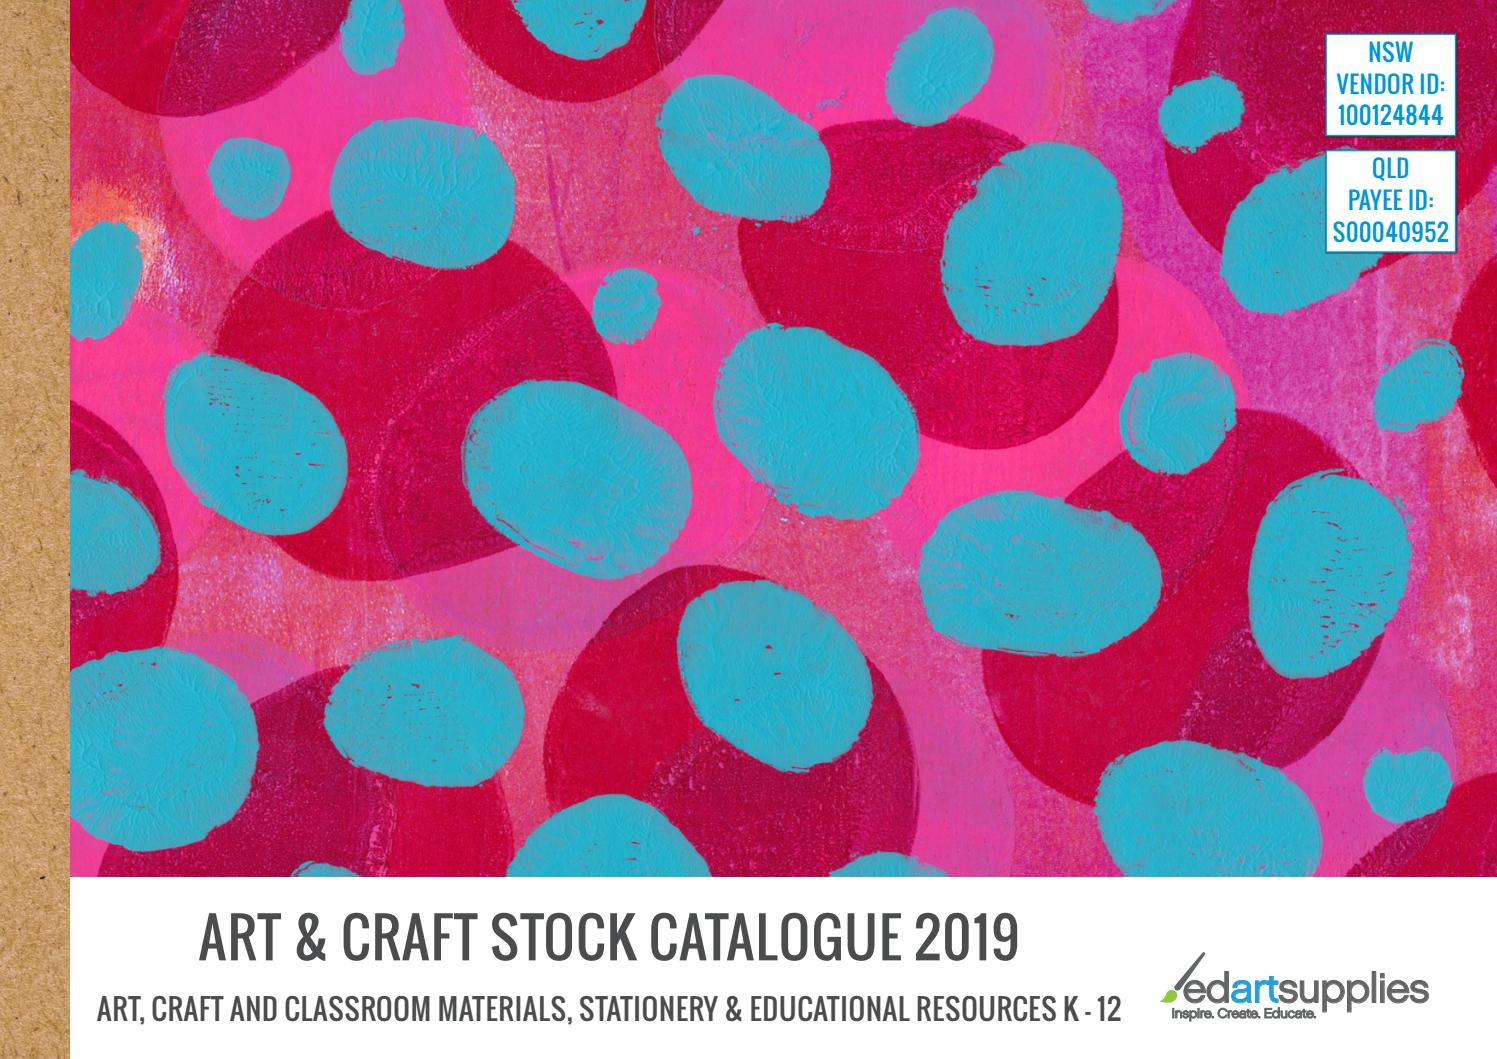 Ed Art Supplies Art Craft Stock Catalogue 2019 By Edartsupplies Issuu